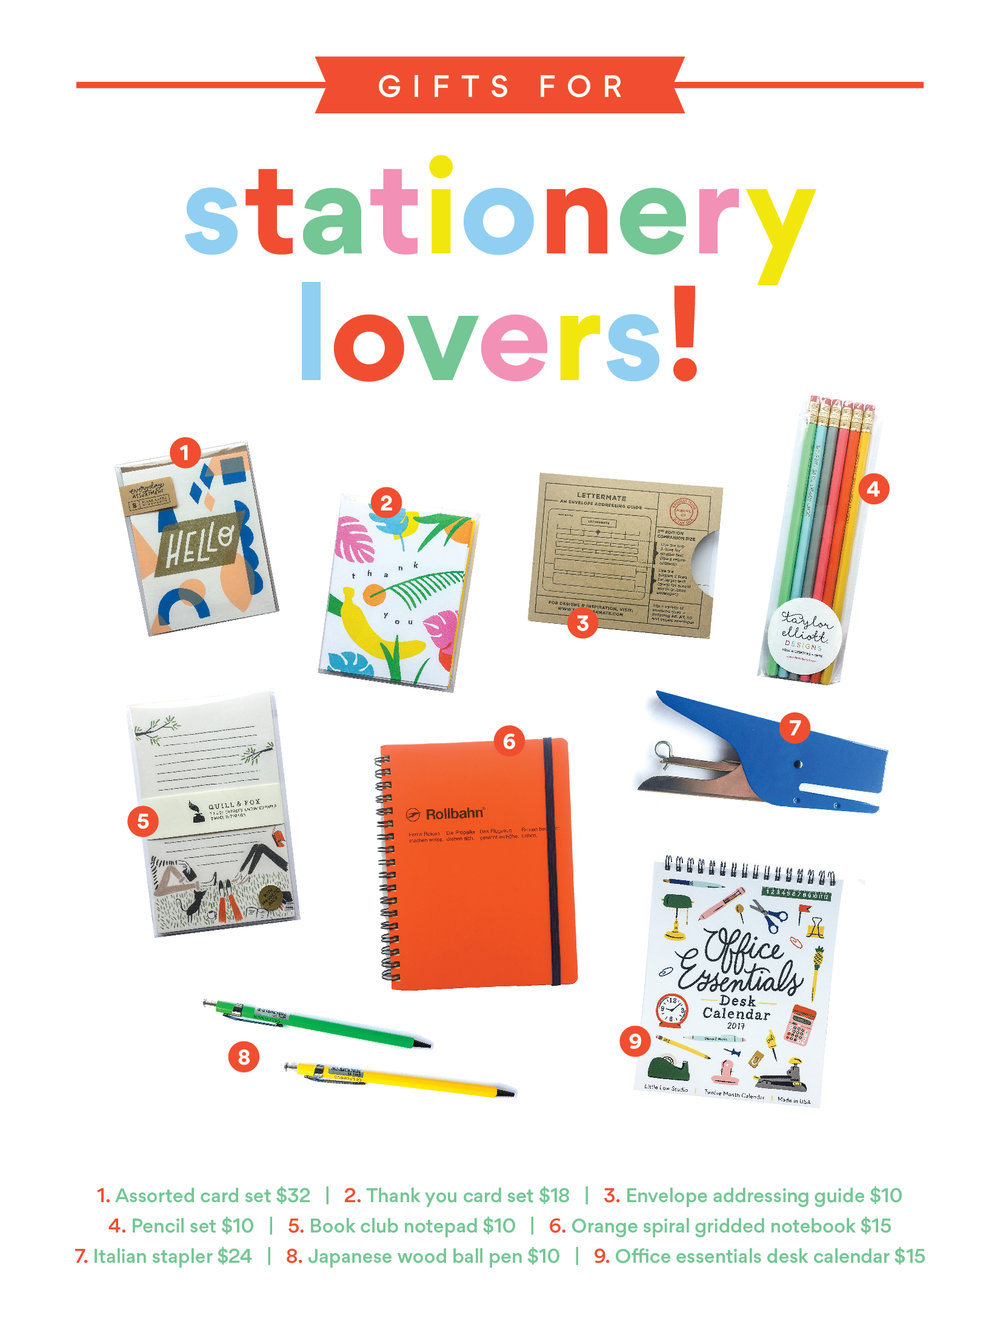 cincinnati covington gift guide holidays 2016 shop local cute stationery